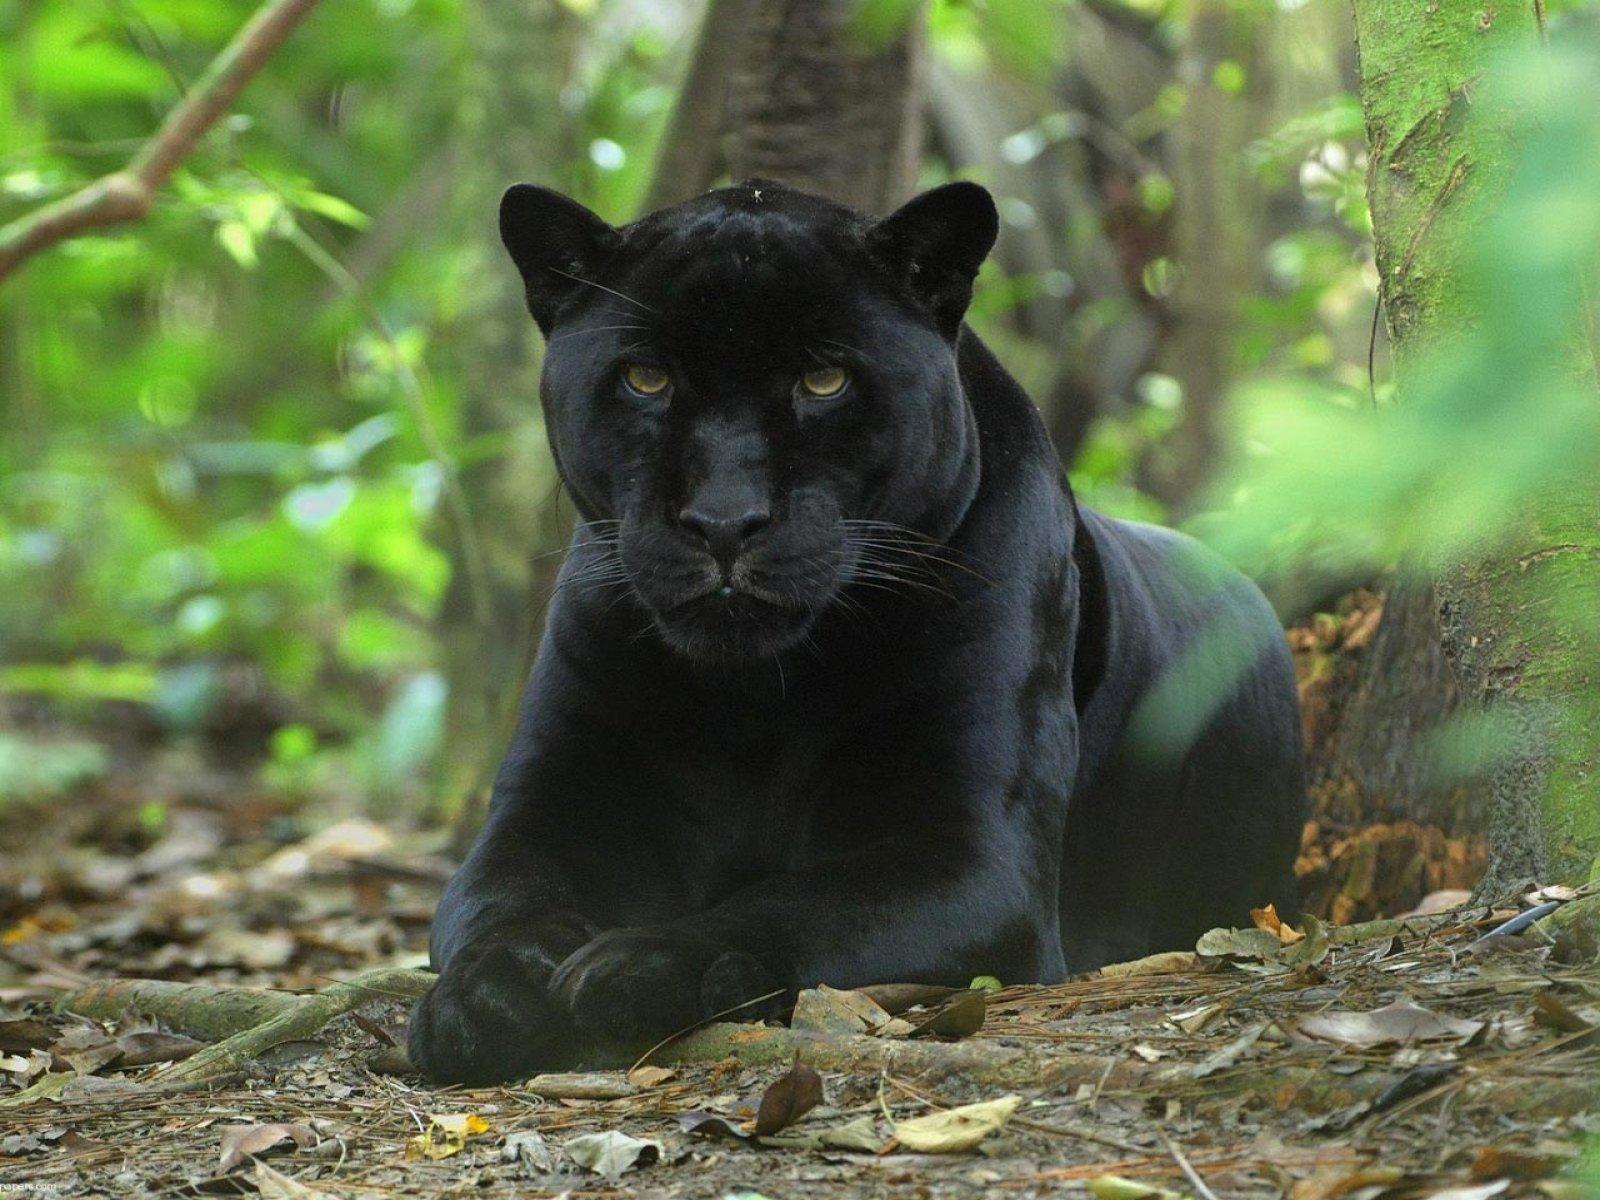 Panther/Black Leopard | Fun Animals Wiki, Videos, Pictures ... - photo#20